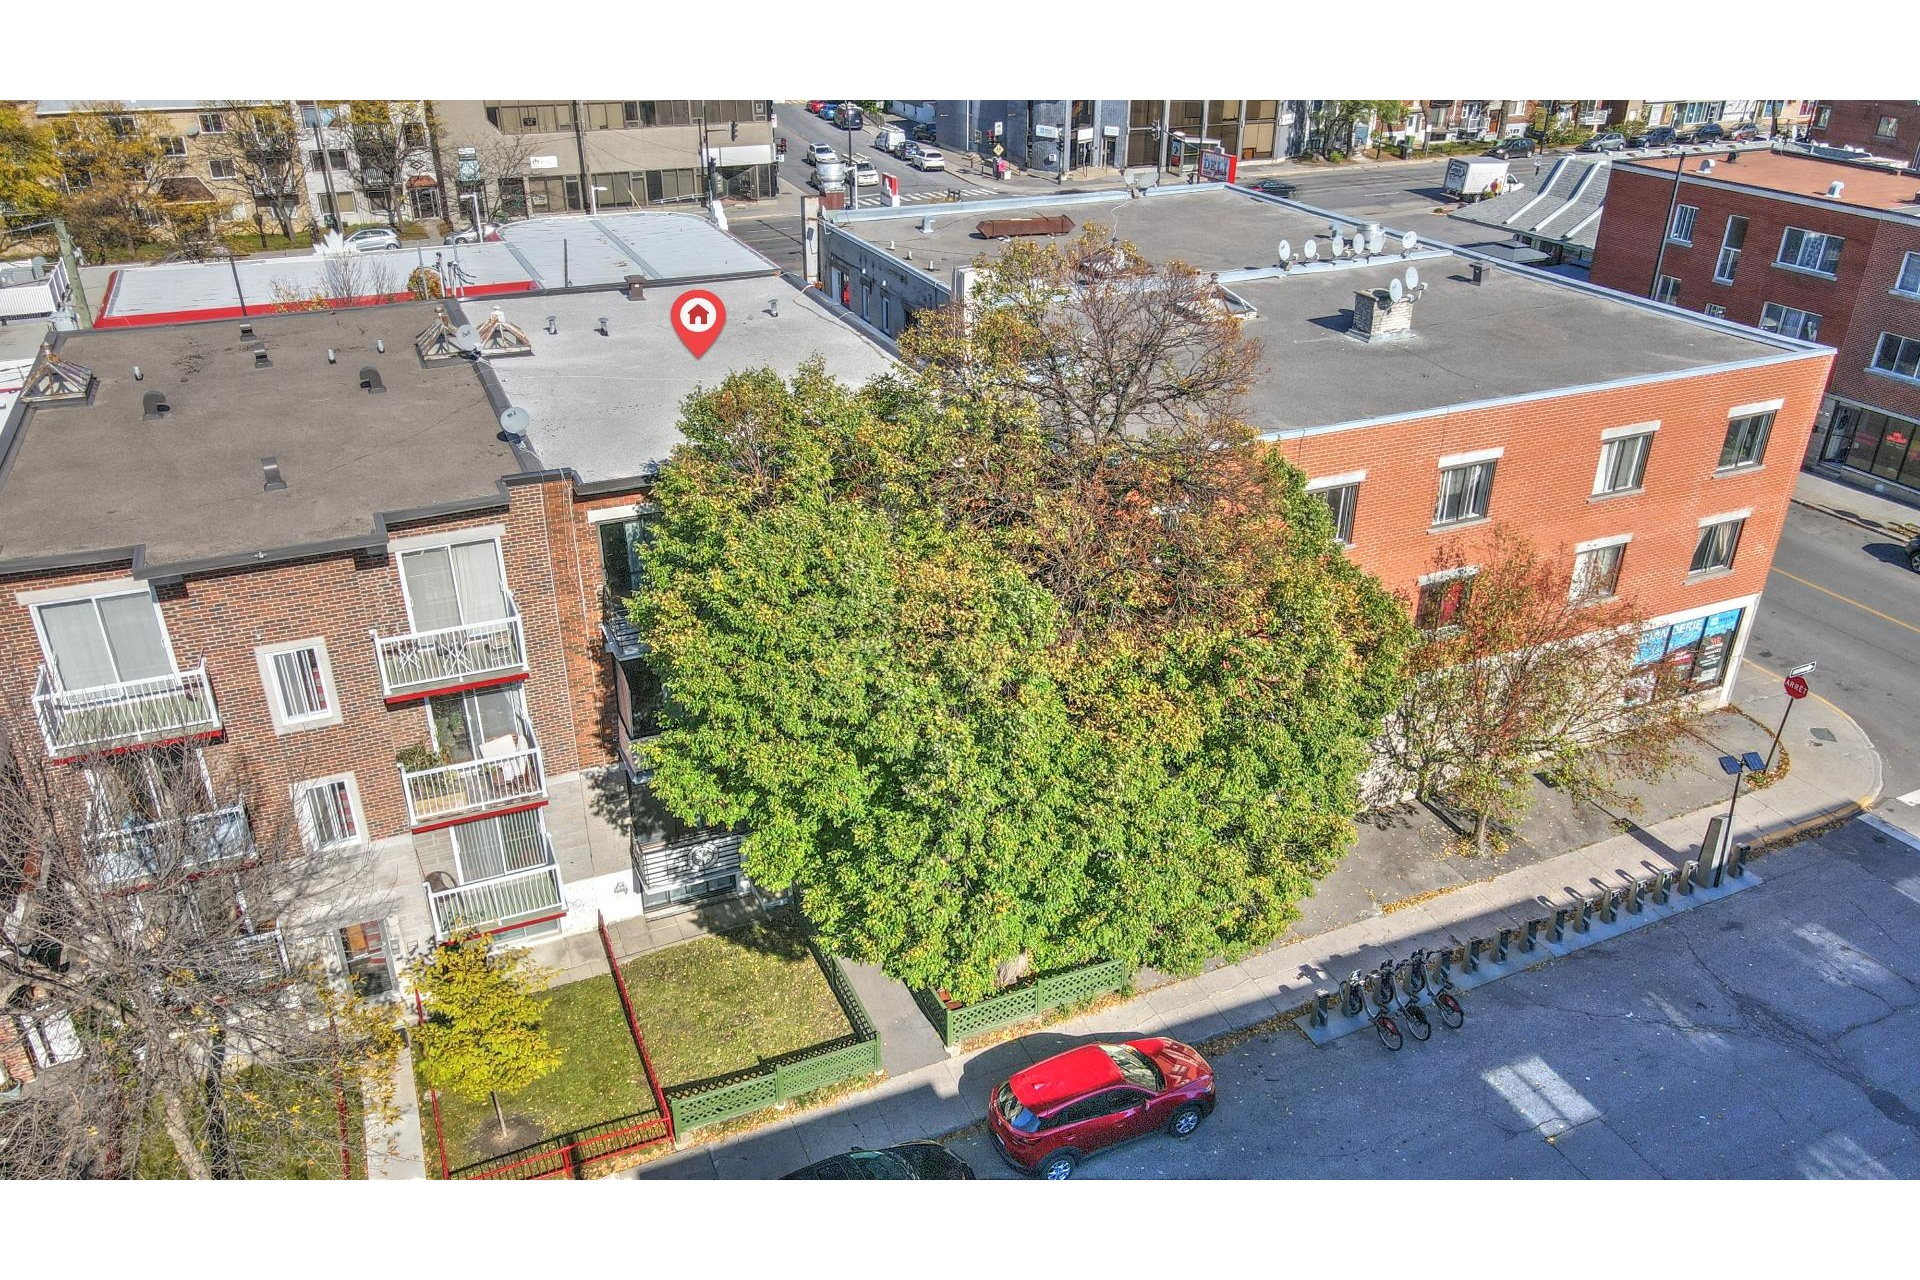 image 10 - Income property For sale Villeray/Saint-Michel/Parc-Extension Montréal  - 3 rooms